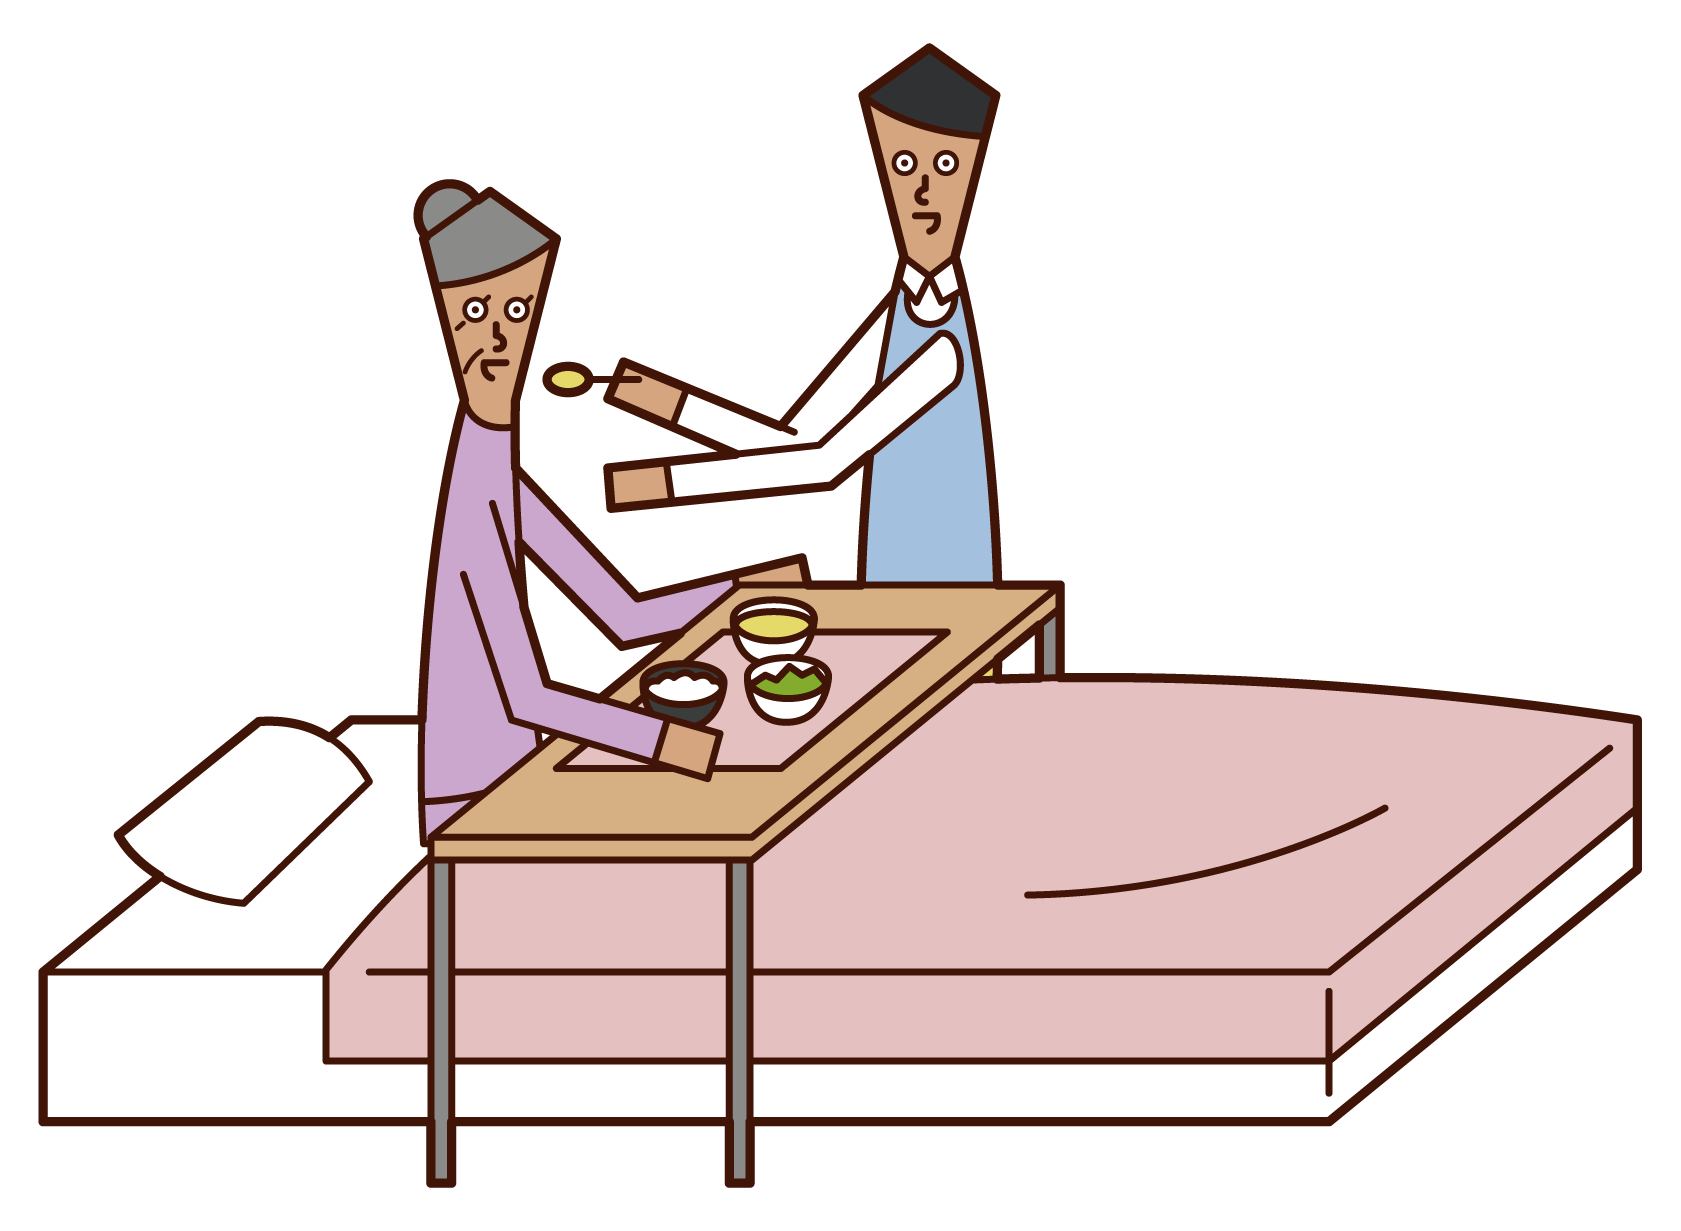 Illustration of a care worker (male) who assists with meals